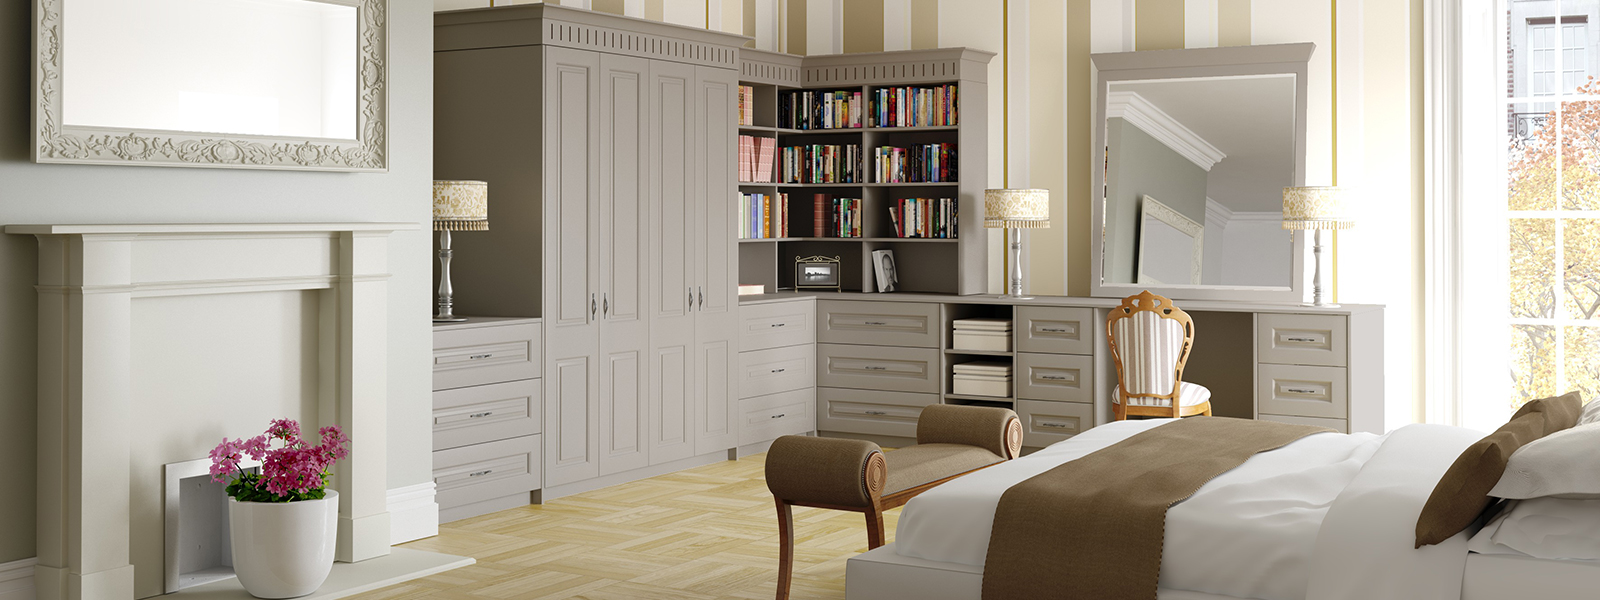 bedrooms select another bedroom bedrooms classic stone grey bedrooms